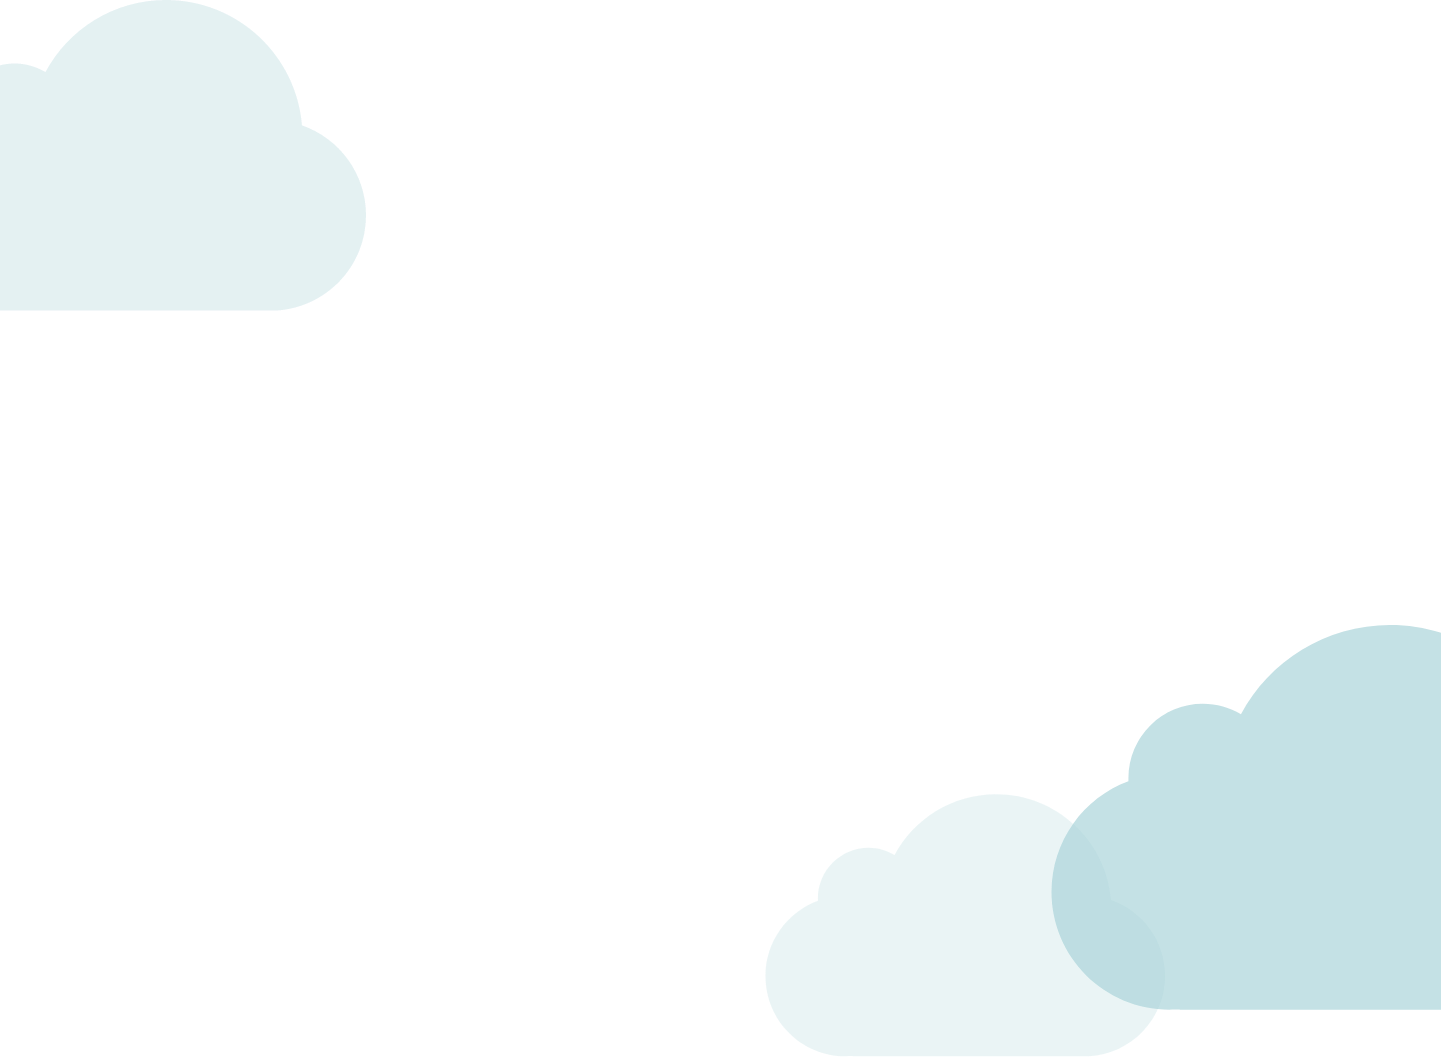 Illustration clouds